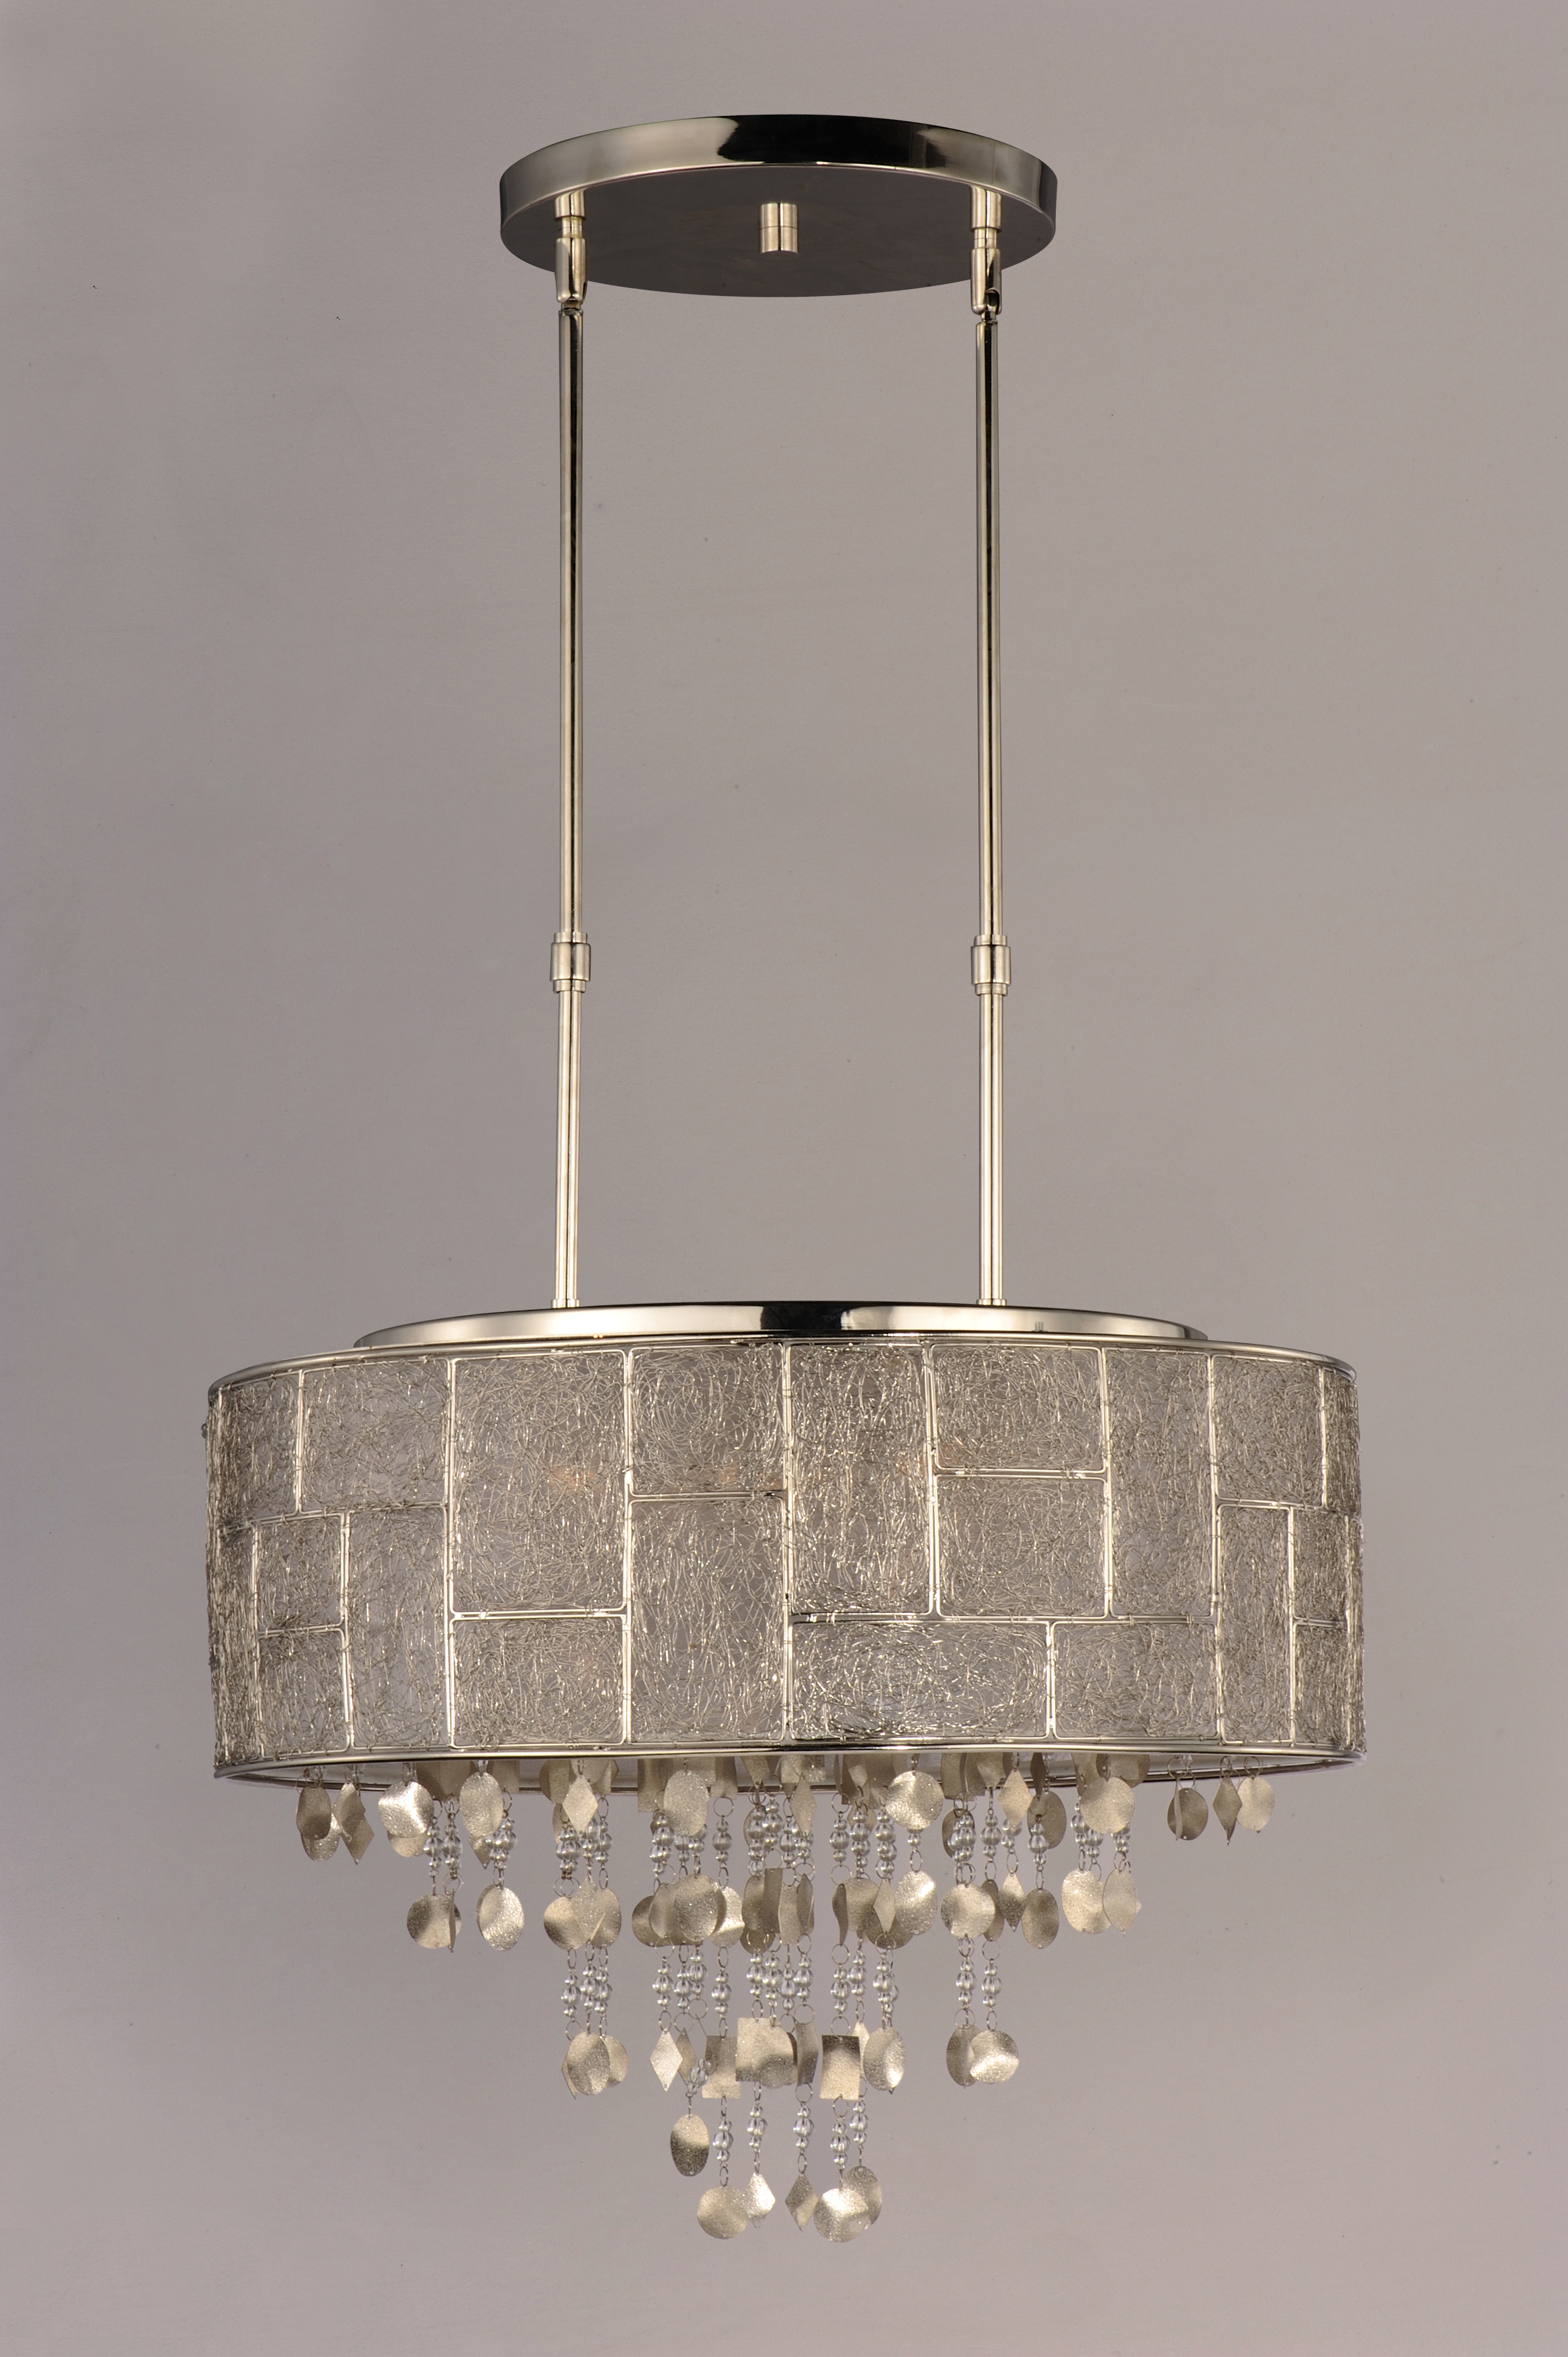 a glass multi cluster globe made chandelier buy handmade providenceartglass pendant banded port by clear chan custom